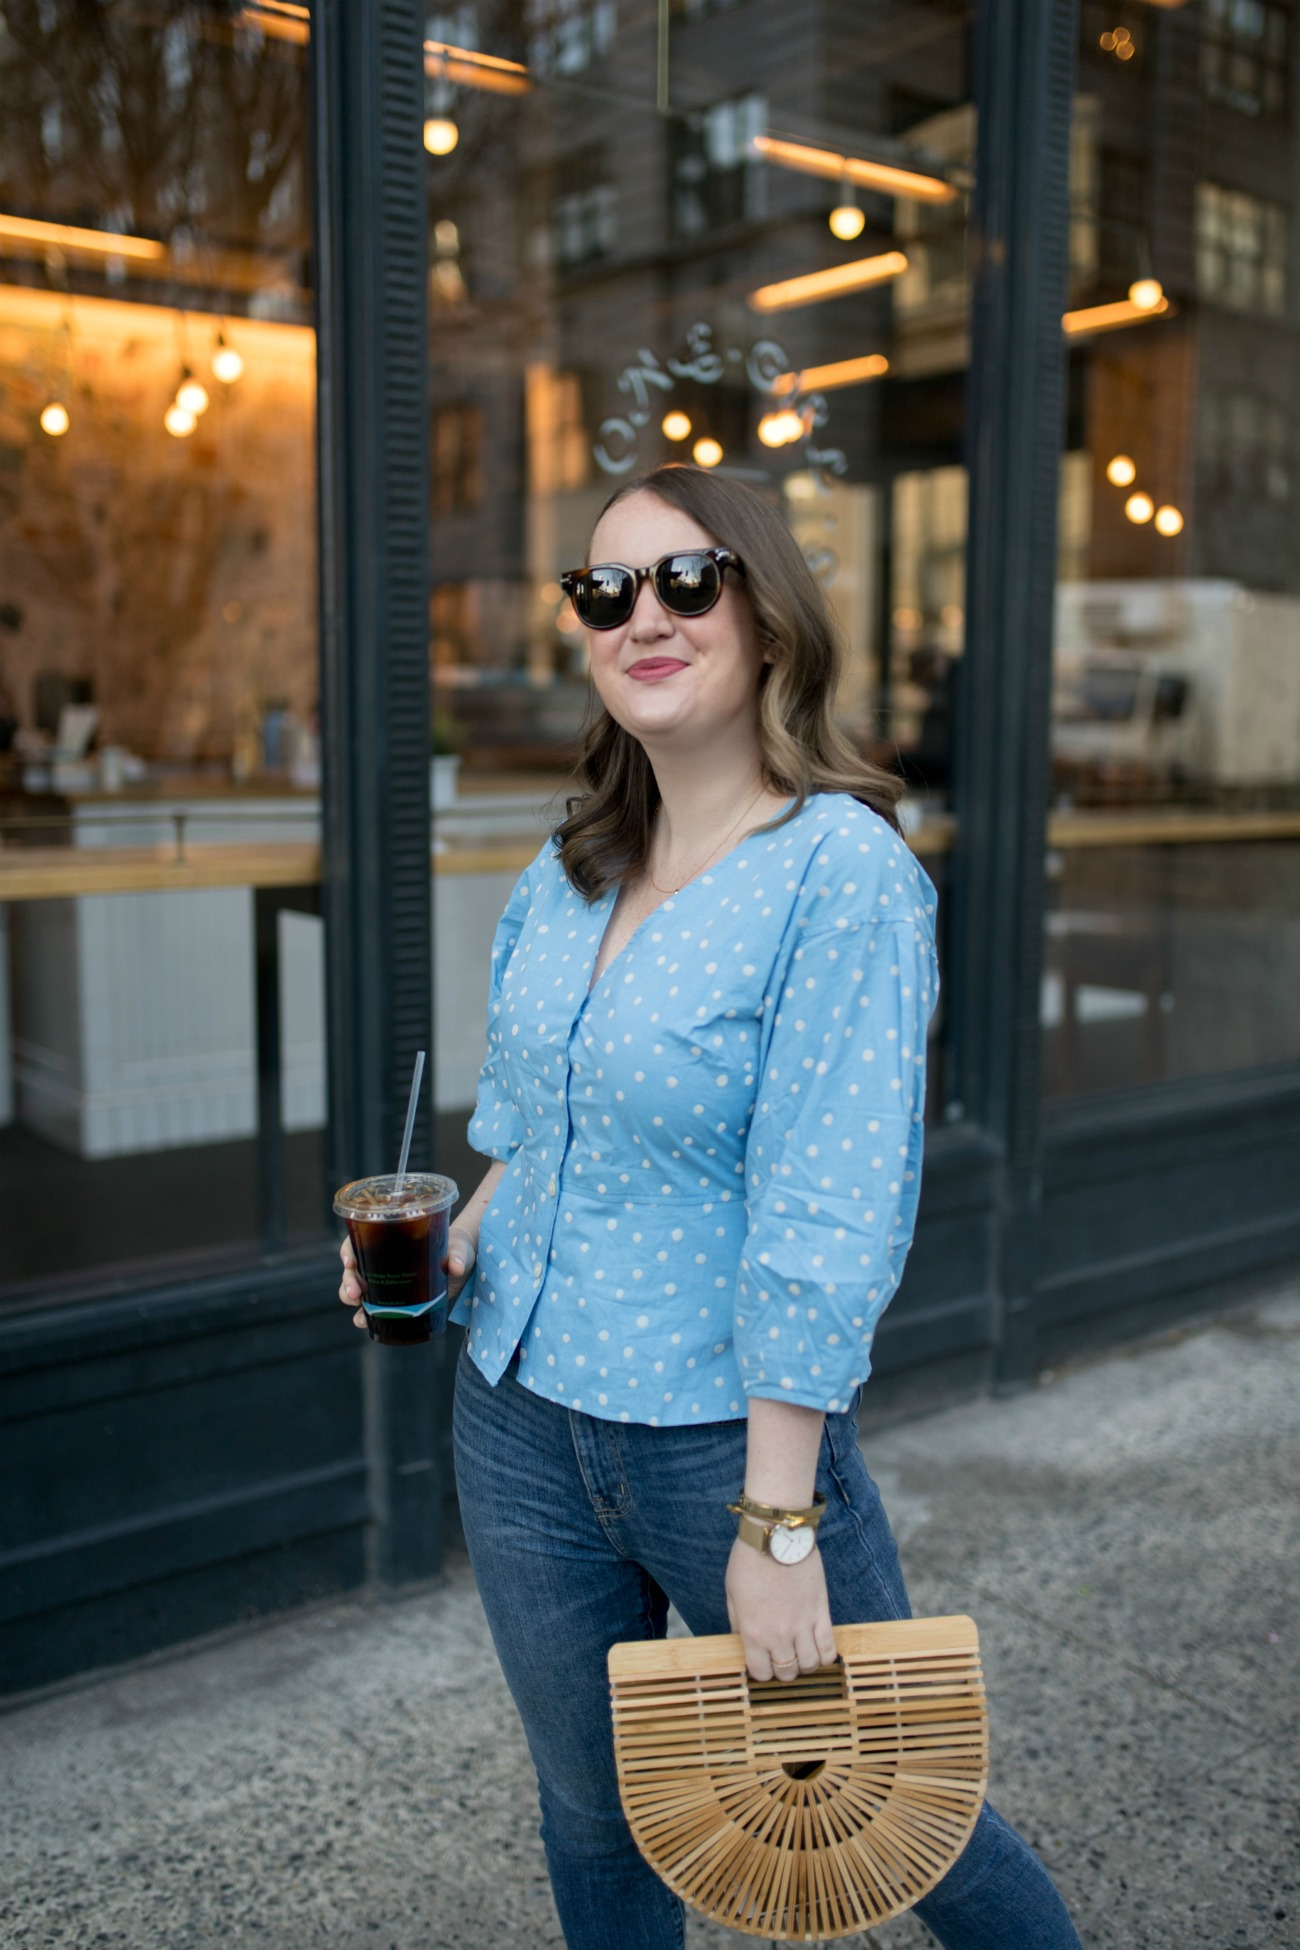 Polka Dot Peplum + Jeans I One of my Favorite Silhouettes to Wear | wit & whimsy